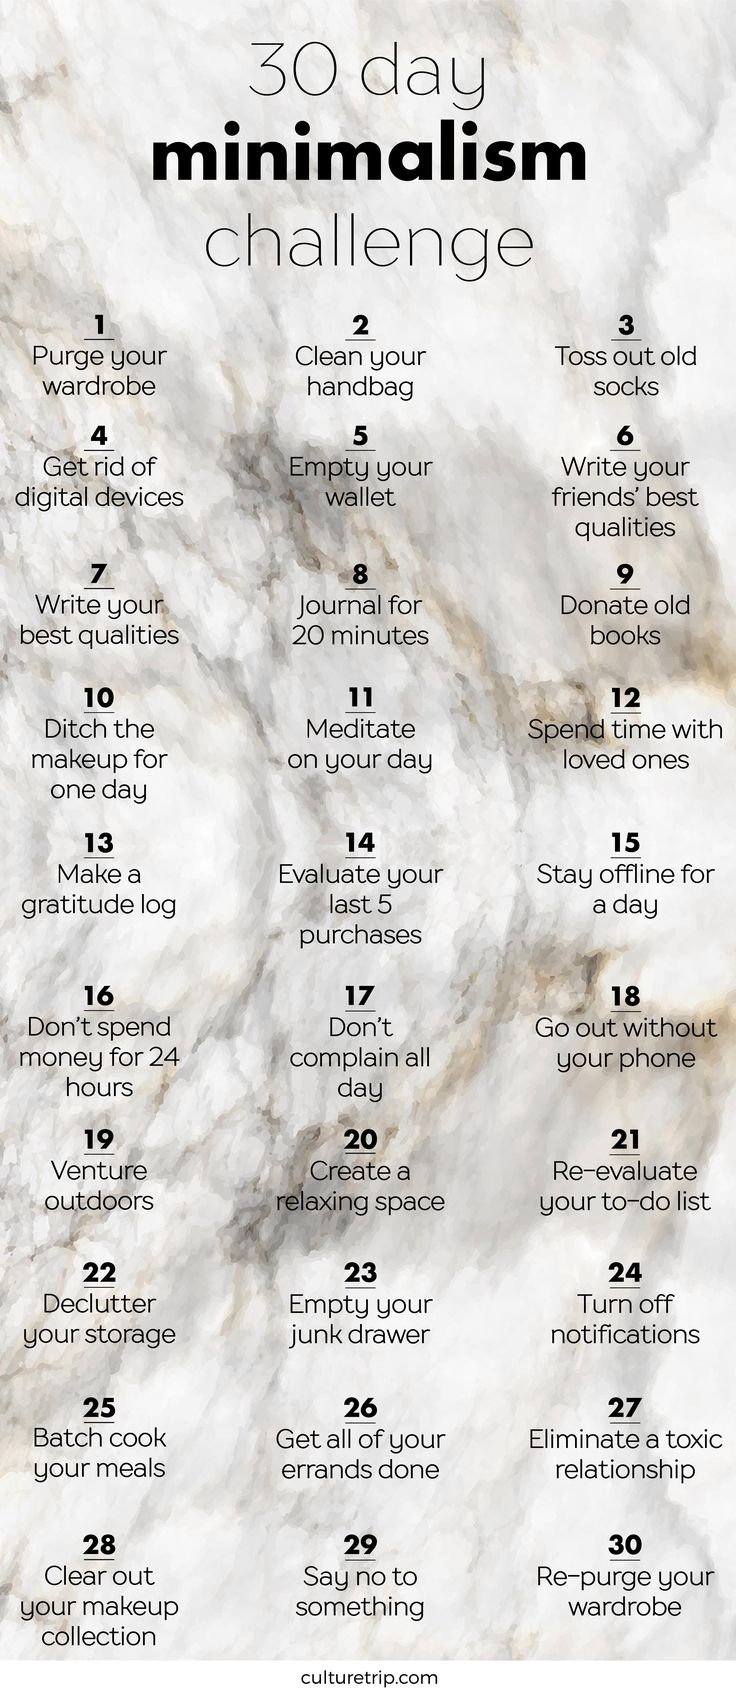 The 30 Day Minimalism Challenge